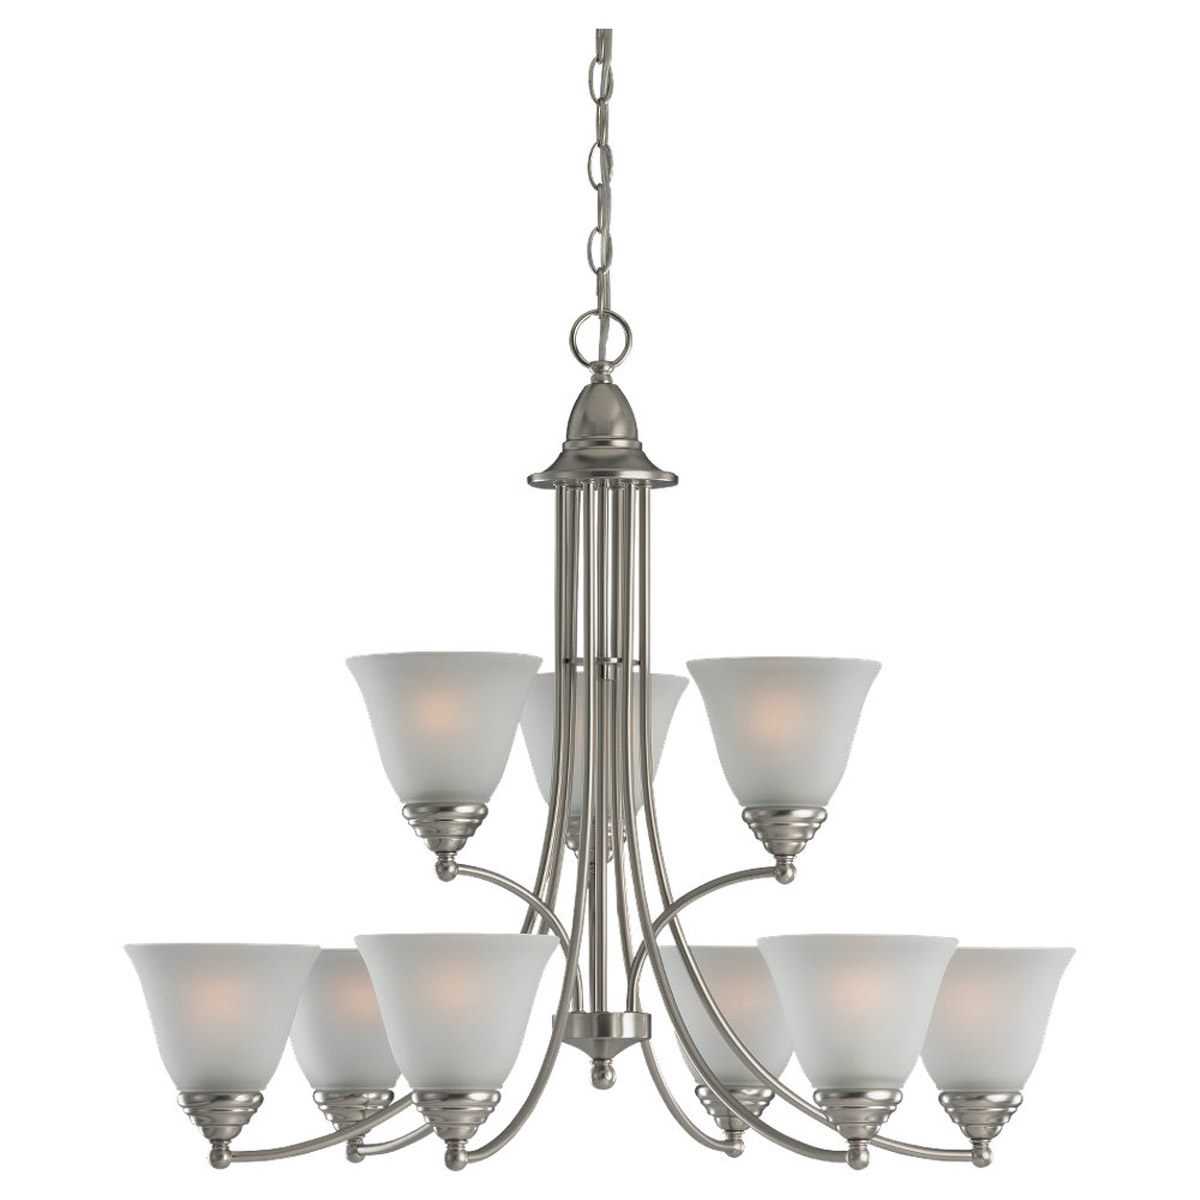 Sea Gull Lighting Albany 9 Light Chandelier in Brushed Nickel 31577-962